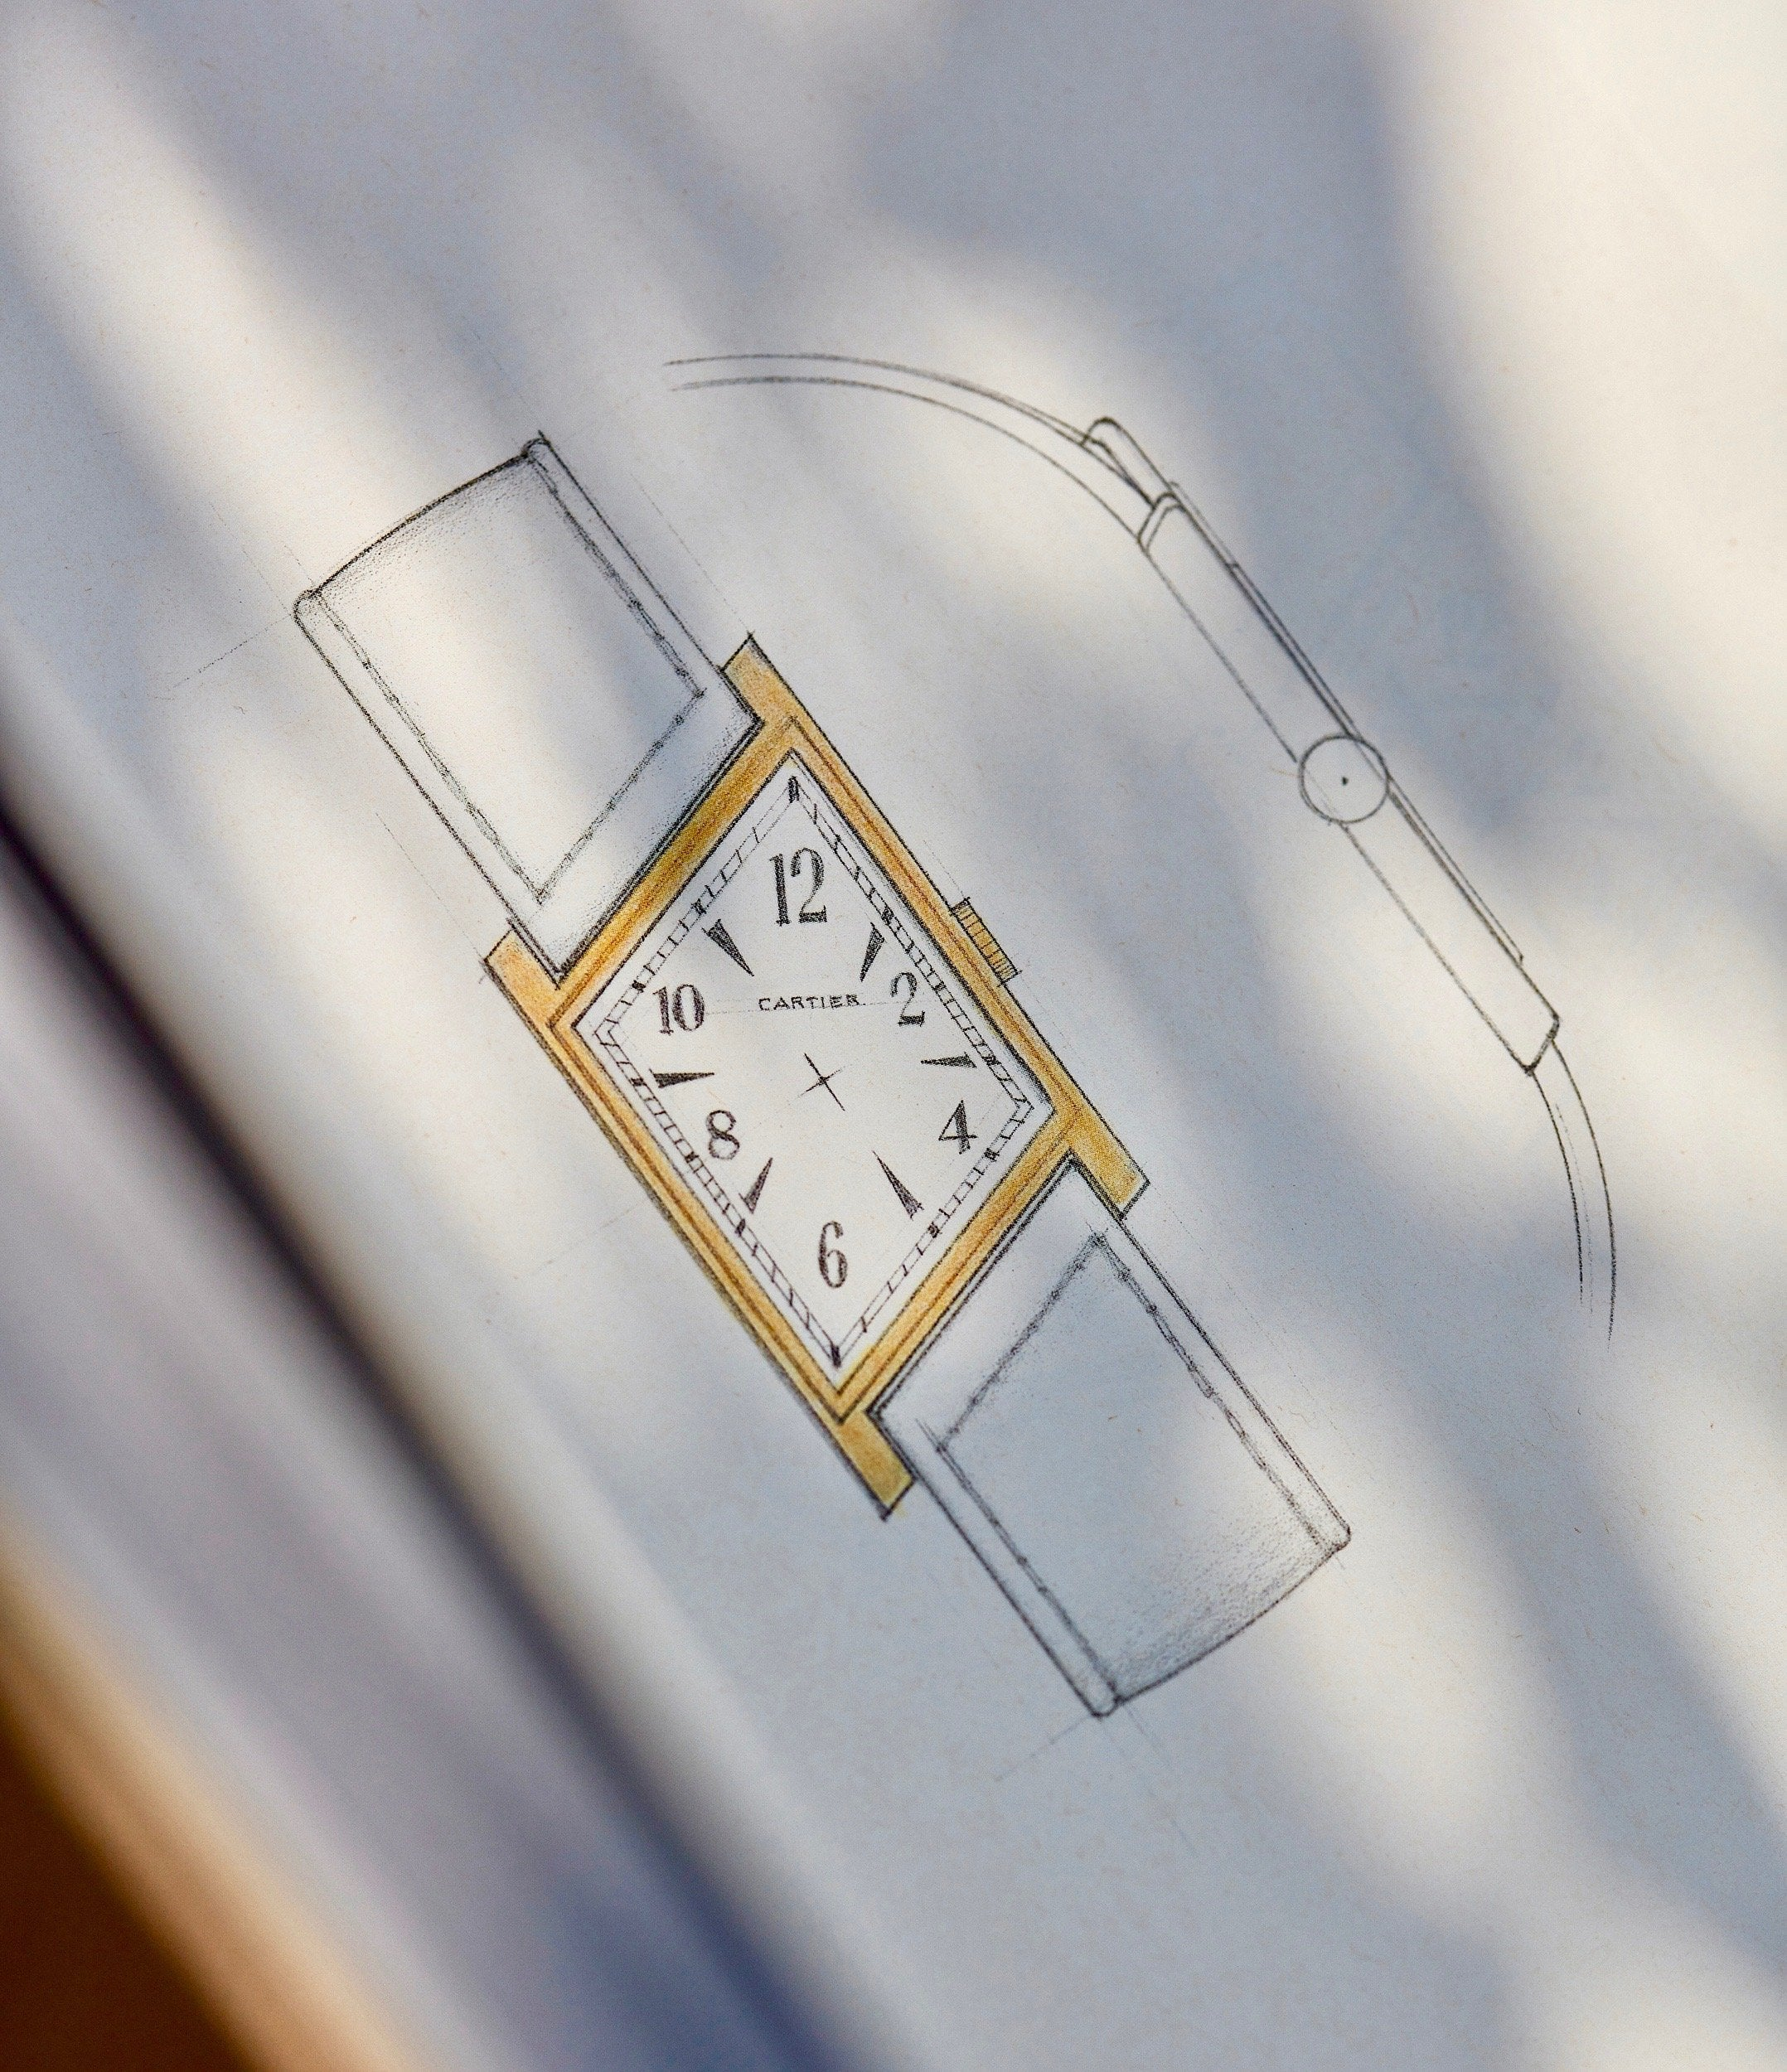 Cartier Asymmetrique drawing in book in The Balance of Symmetry and Asymmetry in Dial Design for A Collected Man London